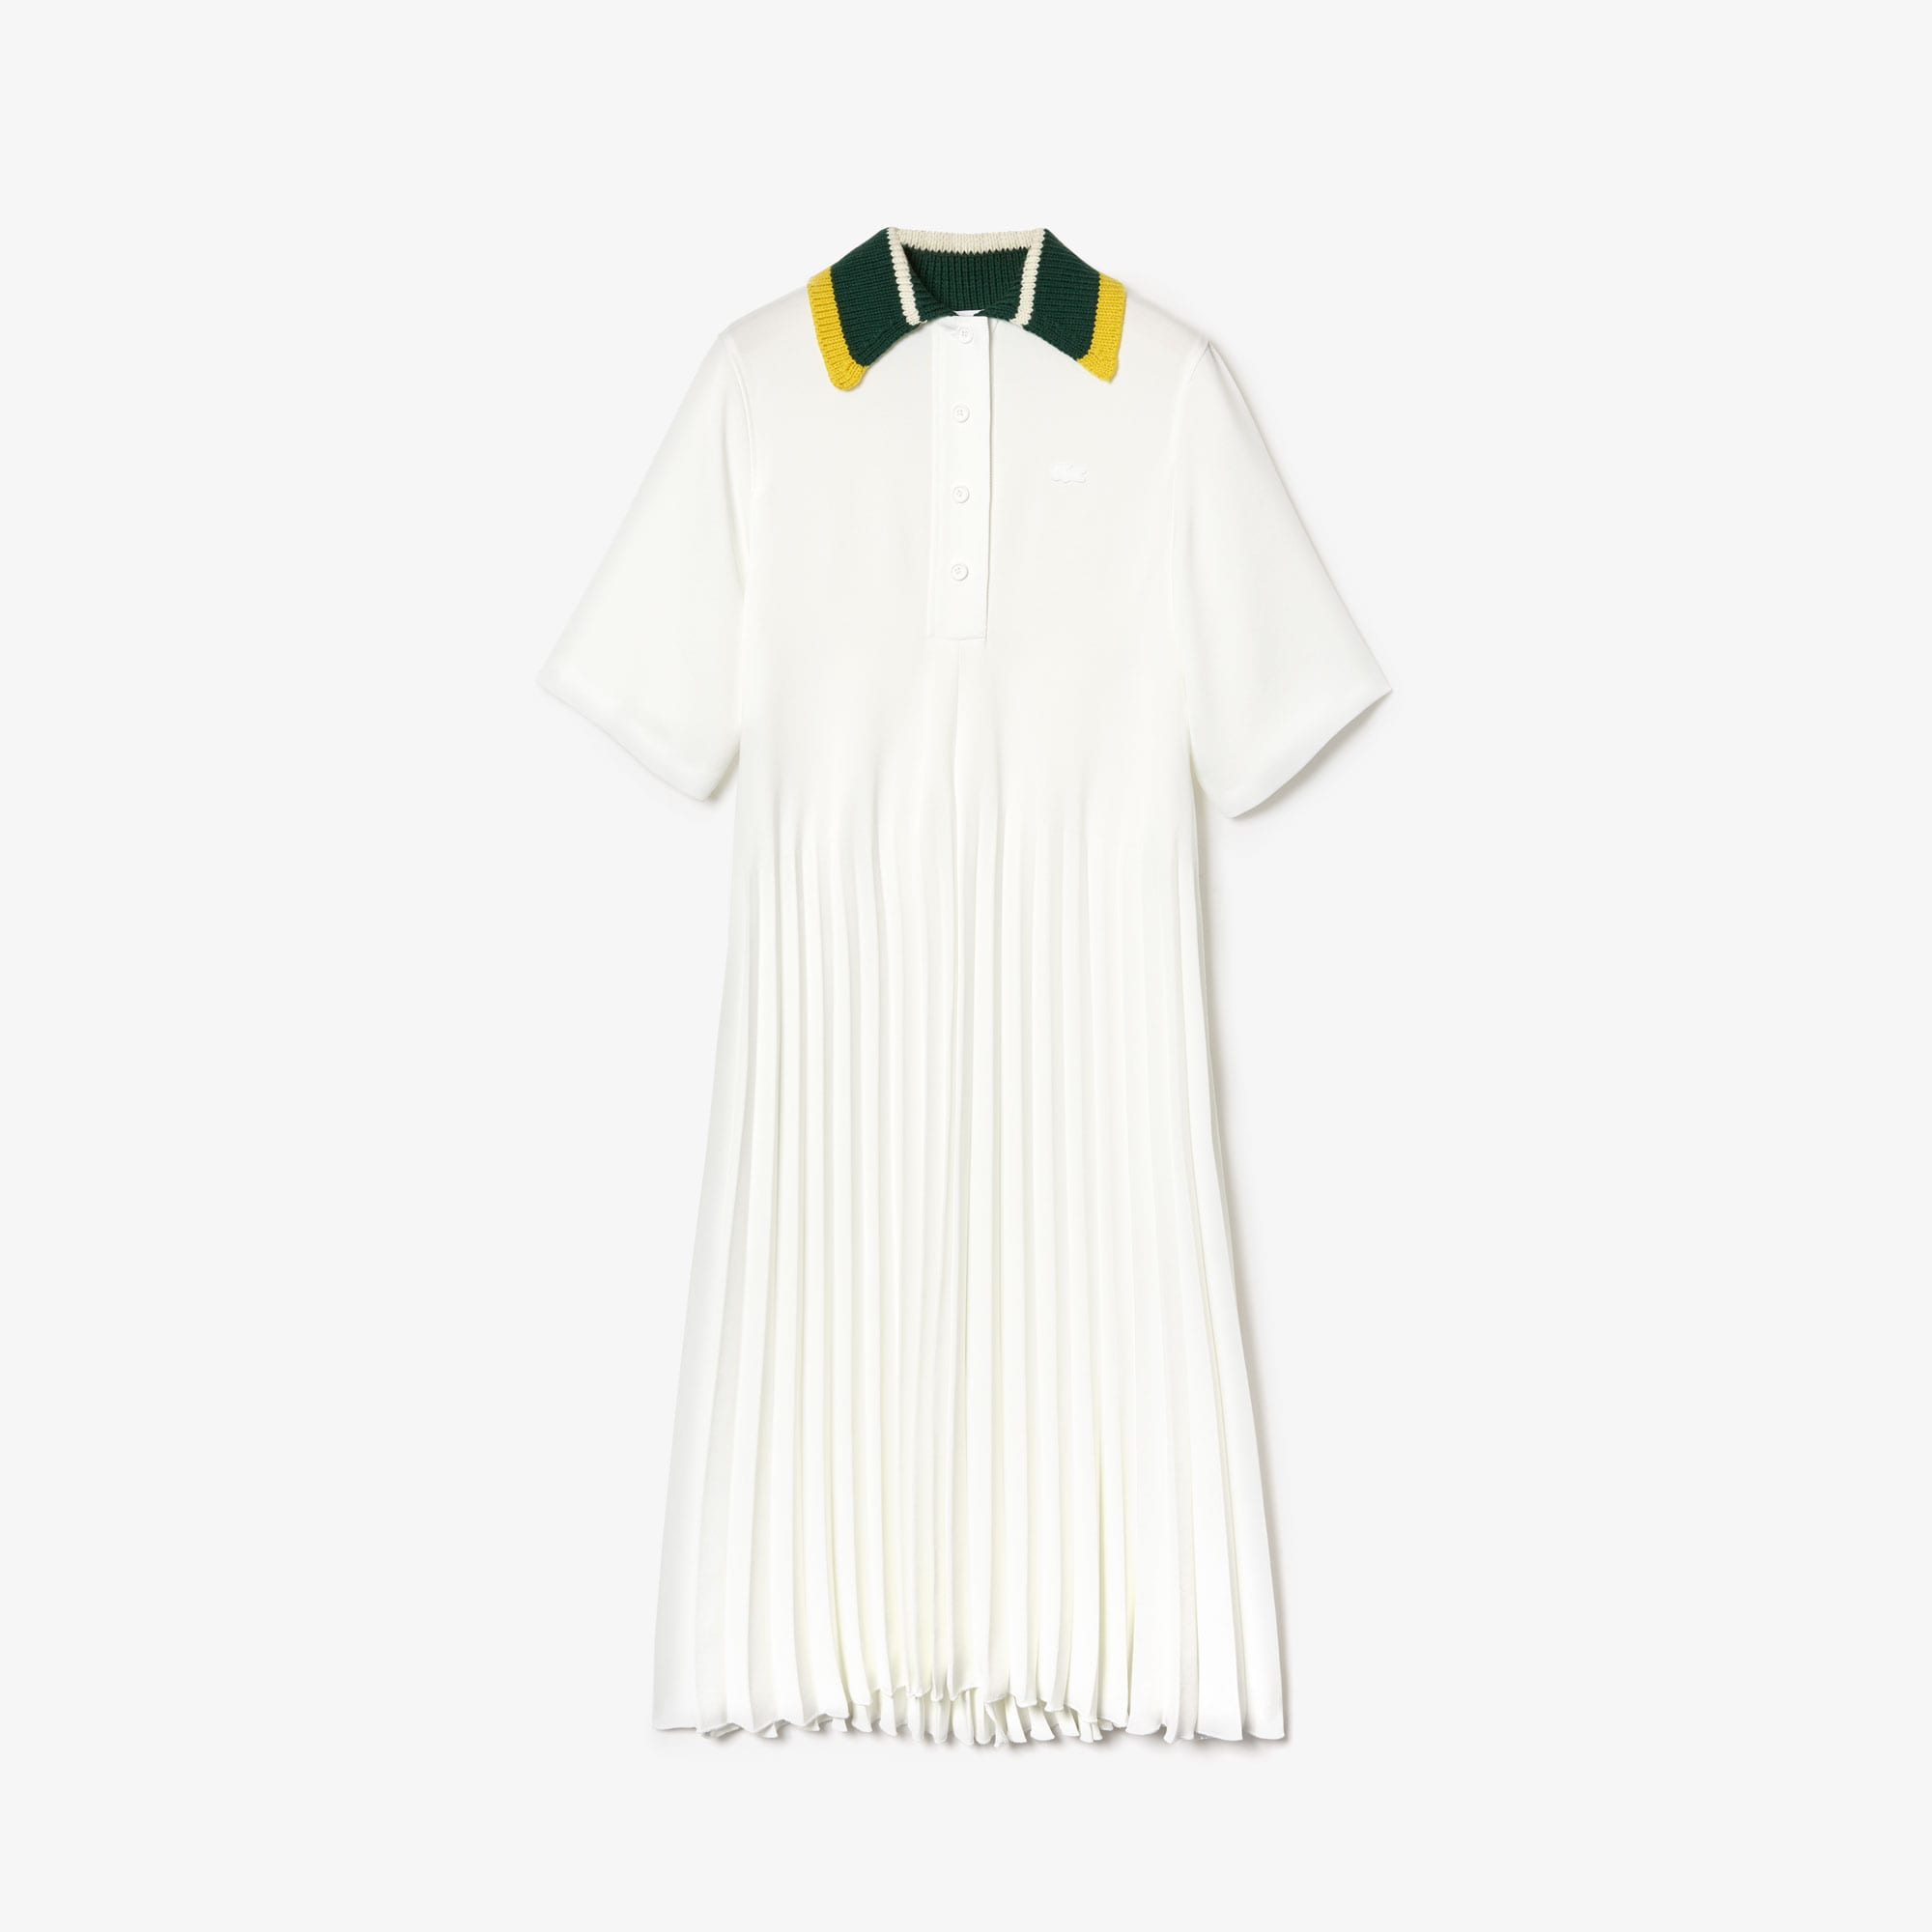 Women's Fashion Show Polo Dress with Knitted Collar